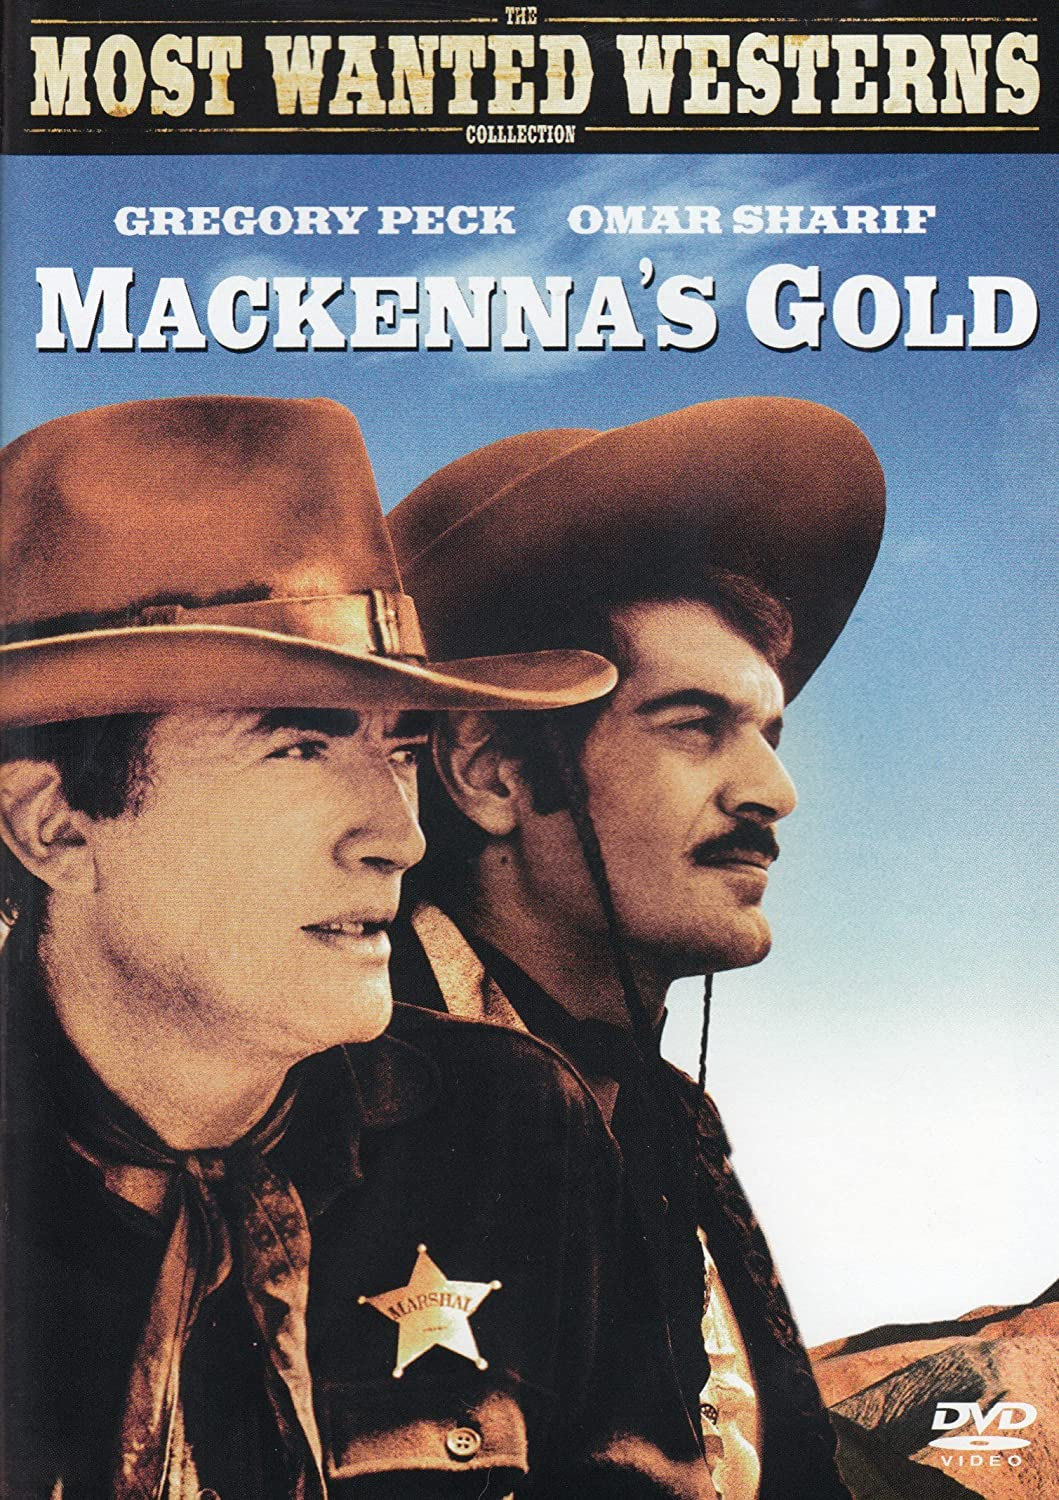 MacKenna's Cheap mail Max 40% OFF order sales Gold